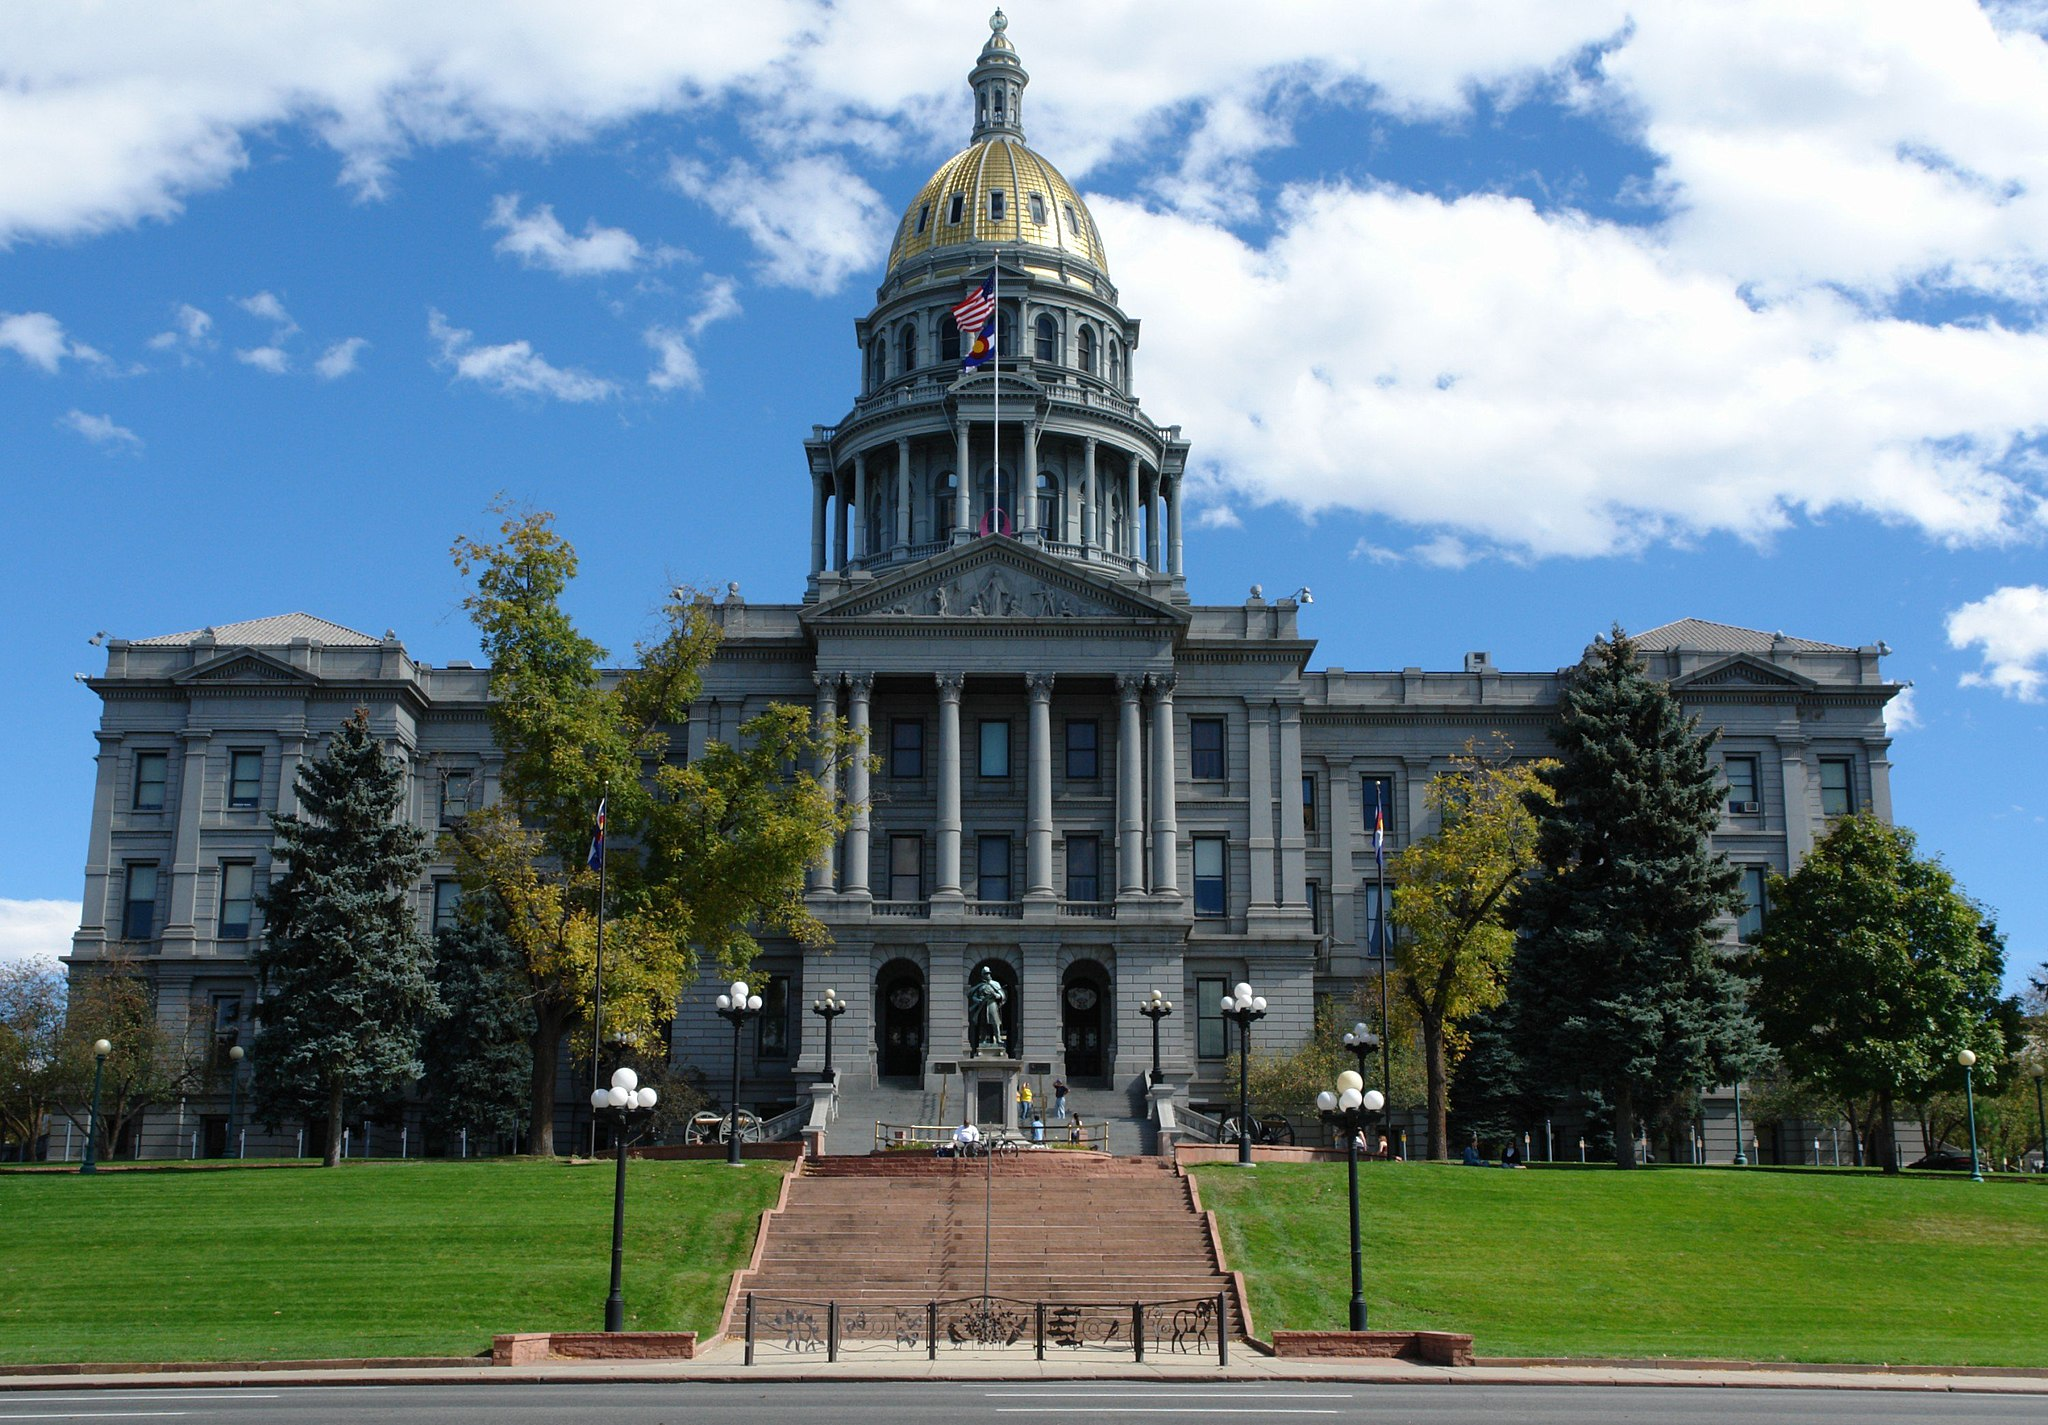 The Colorado State Capitol building on a sunny day